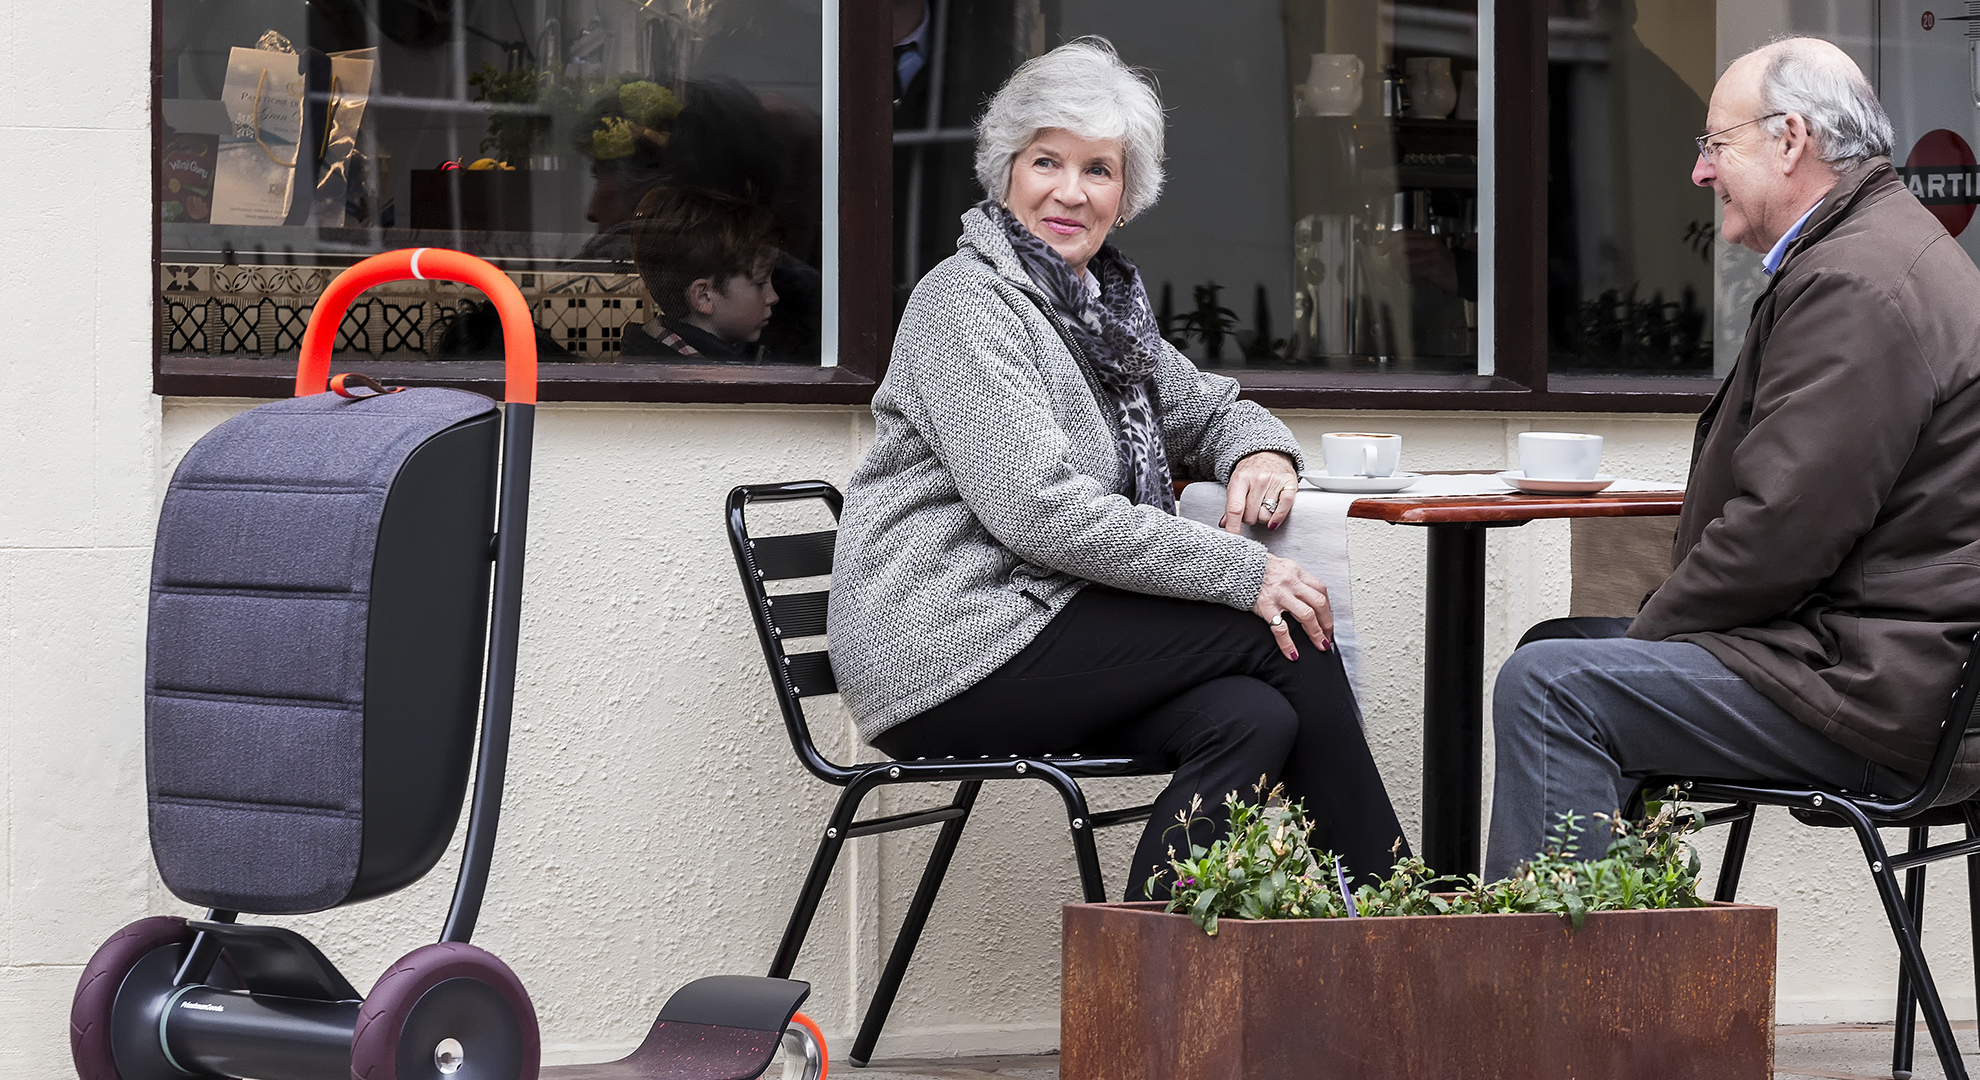 The Scooter for Life by Priestman Goode is a new solution for older and physically challenged people